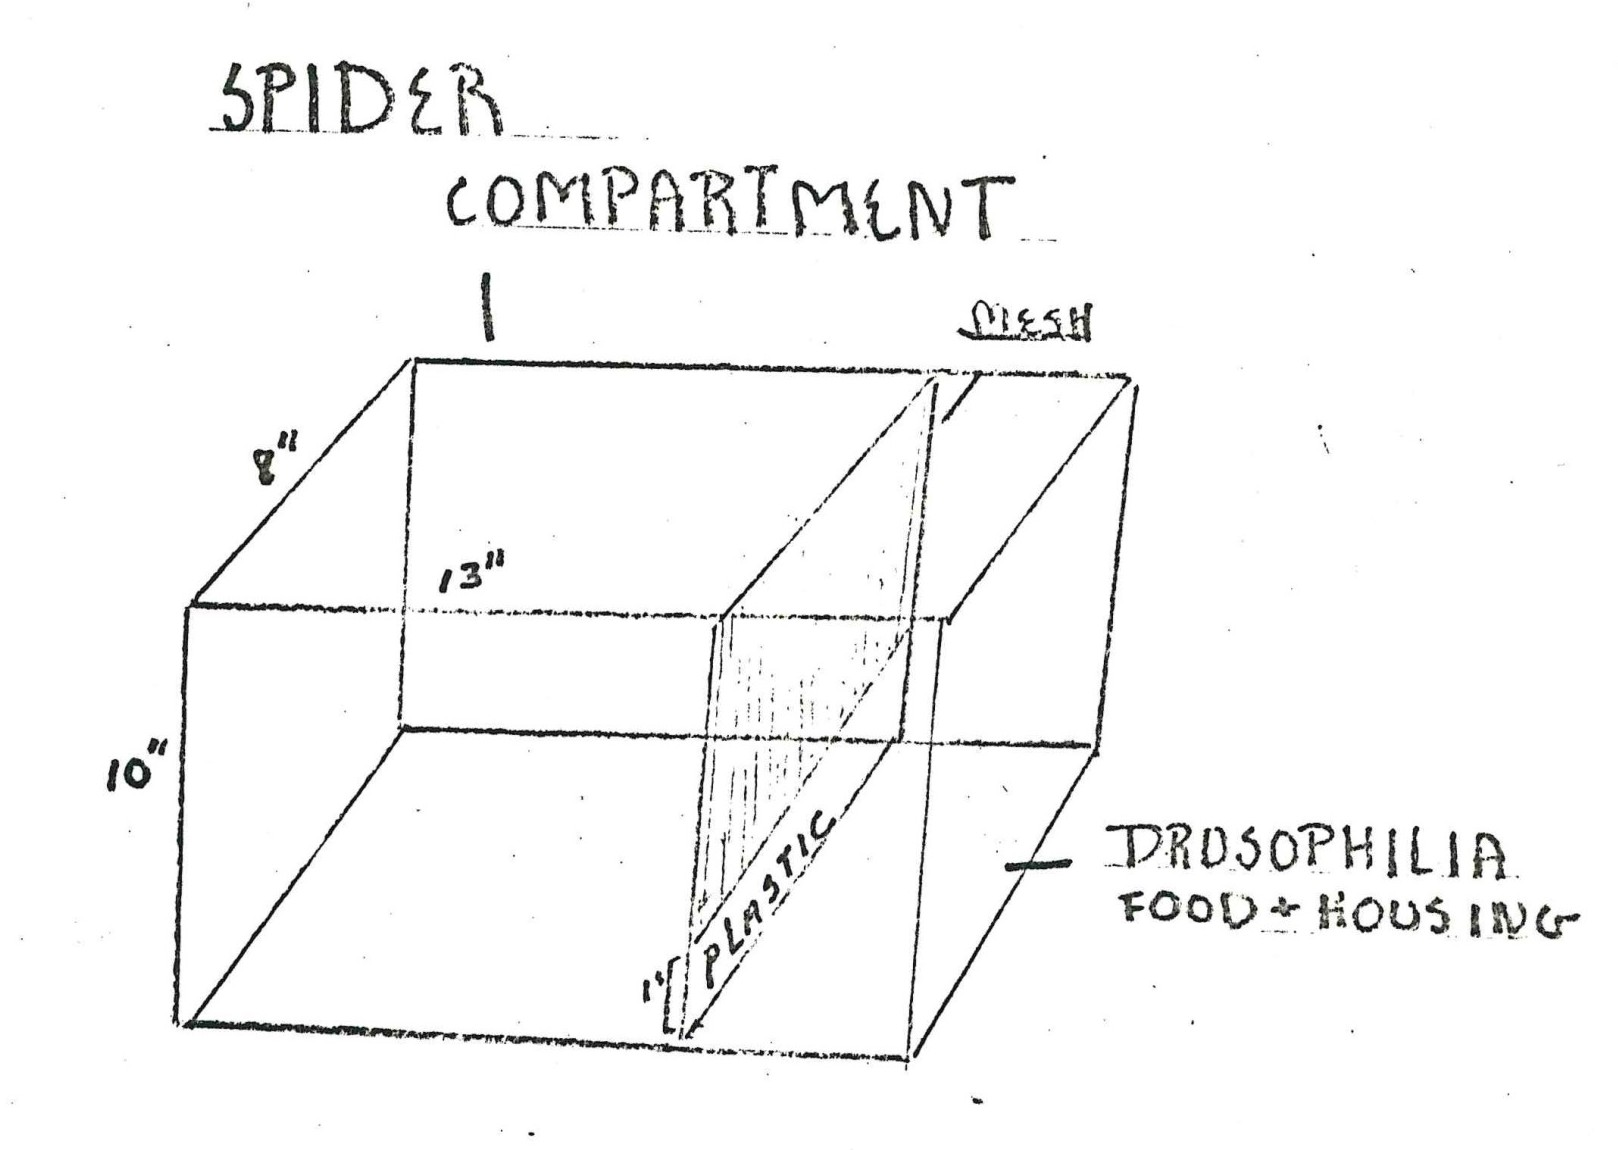 Spider compartment drawing from a Skylab student project